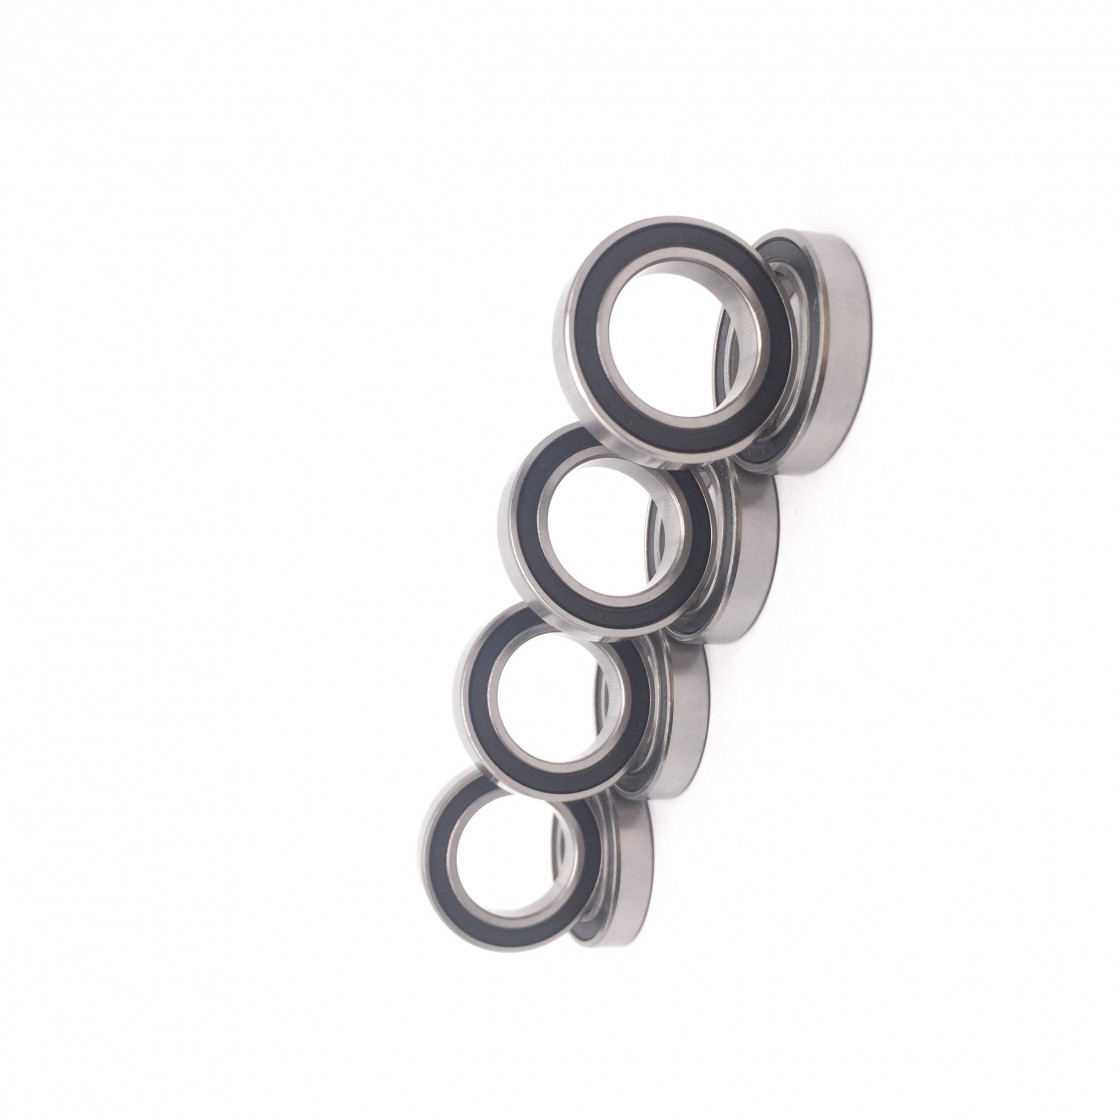 High Quality 6009 6010 6011 6012 6013 6014 6015 6016 6017 Deep Groove Ball Bearing NTN NSK Japan Bearing